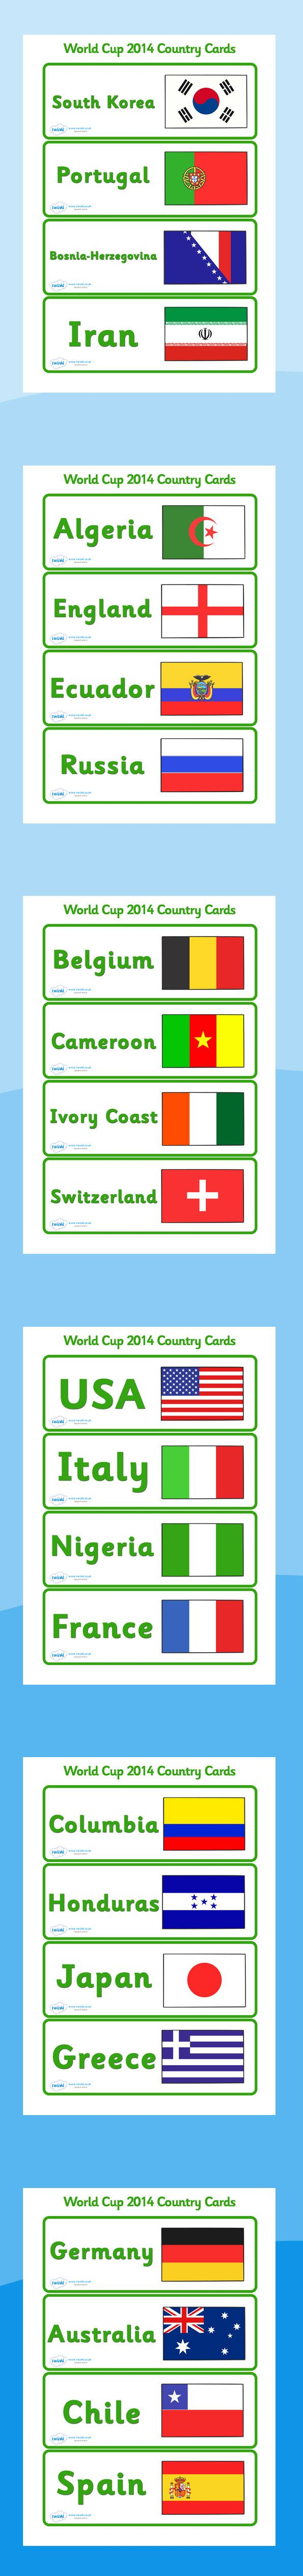 Football/World Cup- The World Cup countries and their flags labels